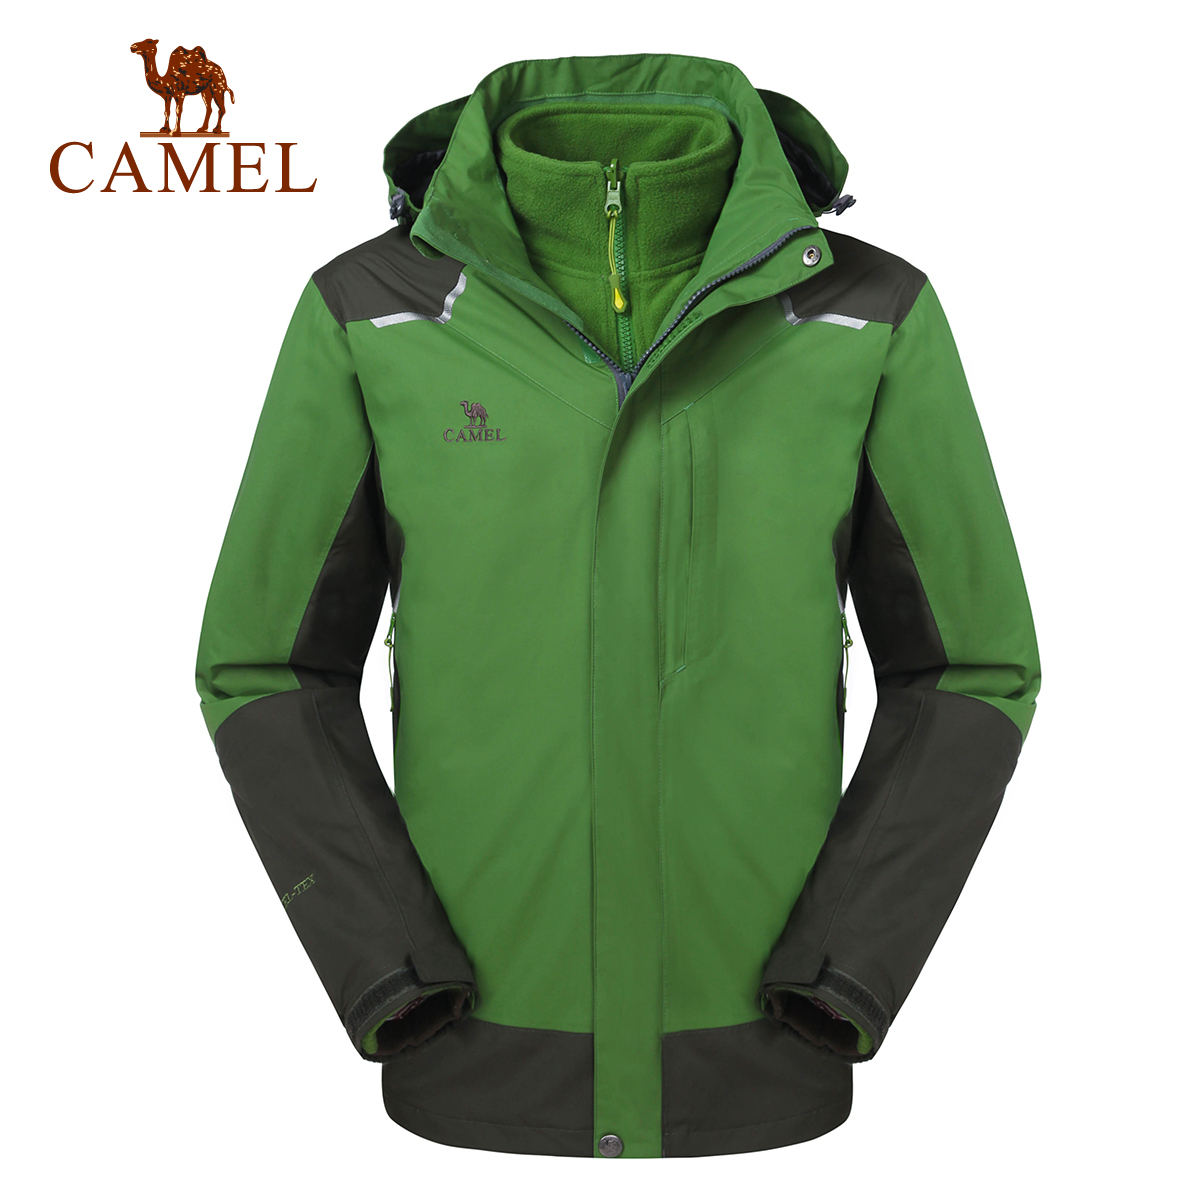 Camel outdoor jackets mens waterproof and breathable piece jackets new autumn and winter A4W216001